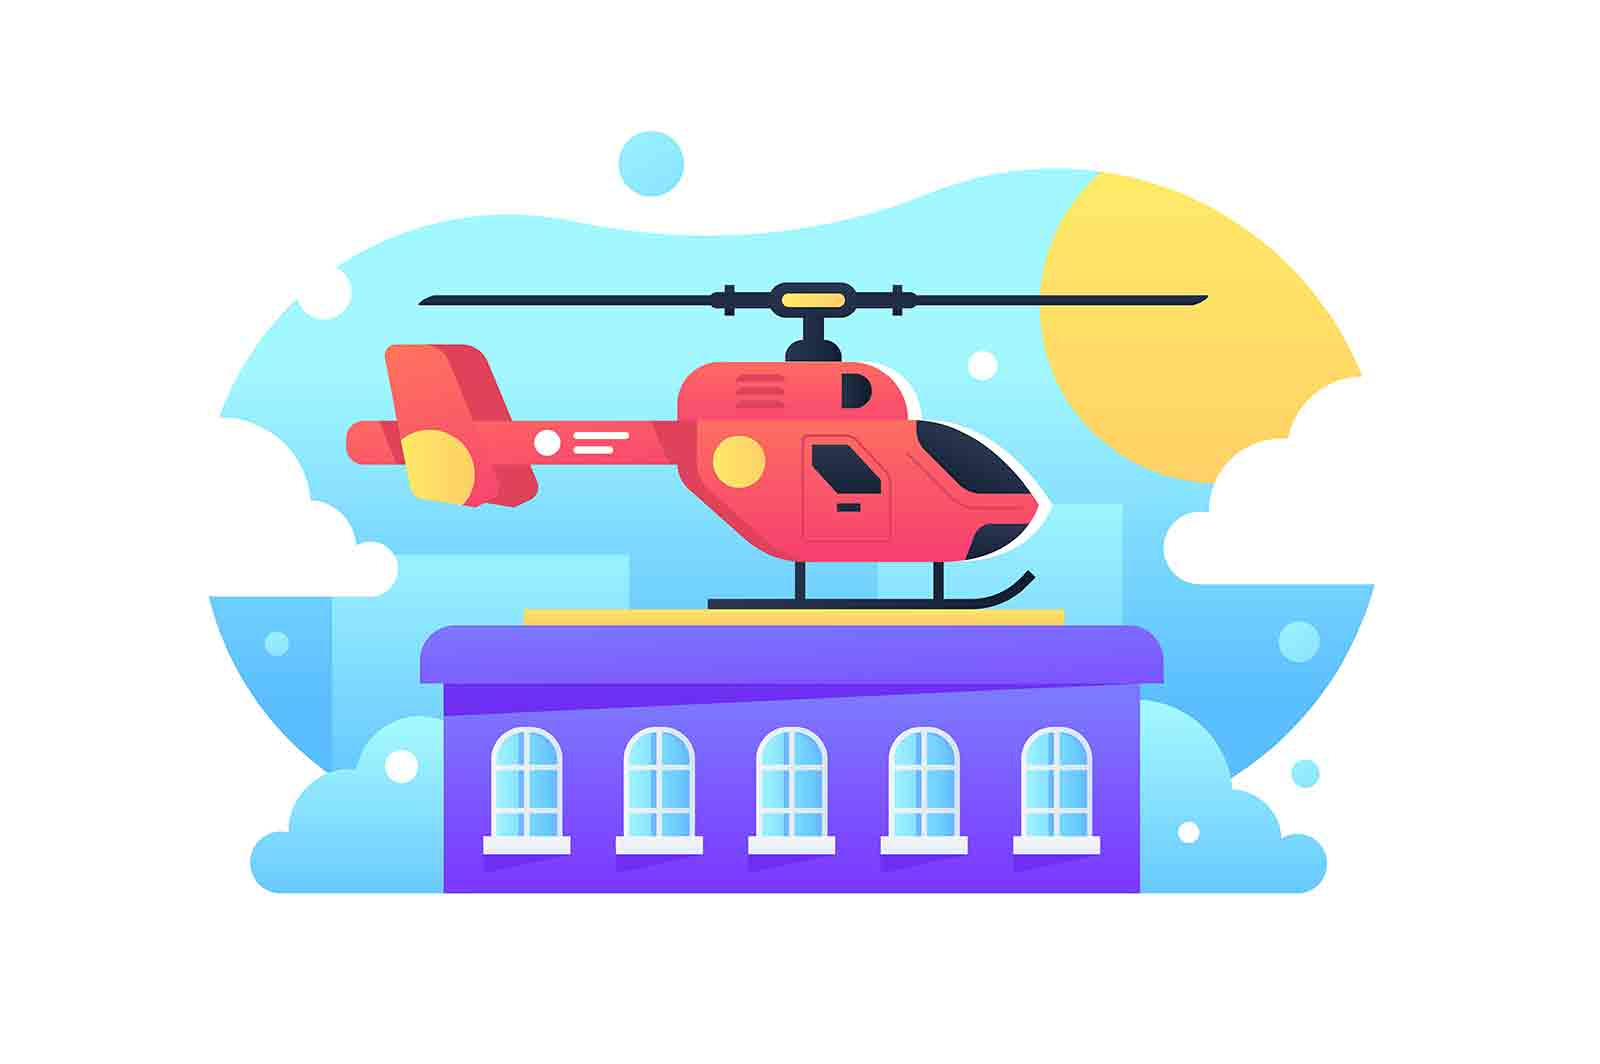 Helicopter standing on rooftop vector illustration. Helipad for landing flat style. Residential building in city. Air transport and vip concept.